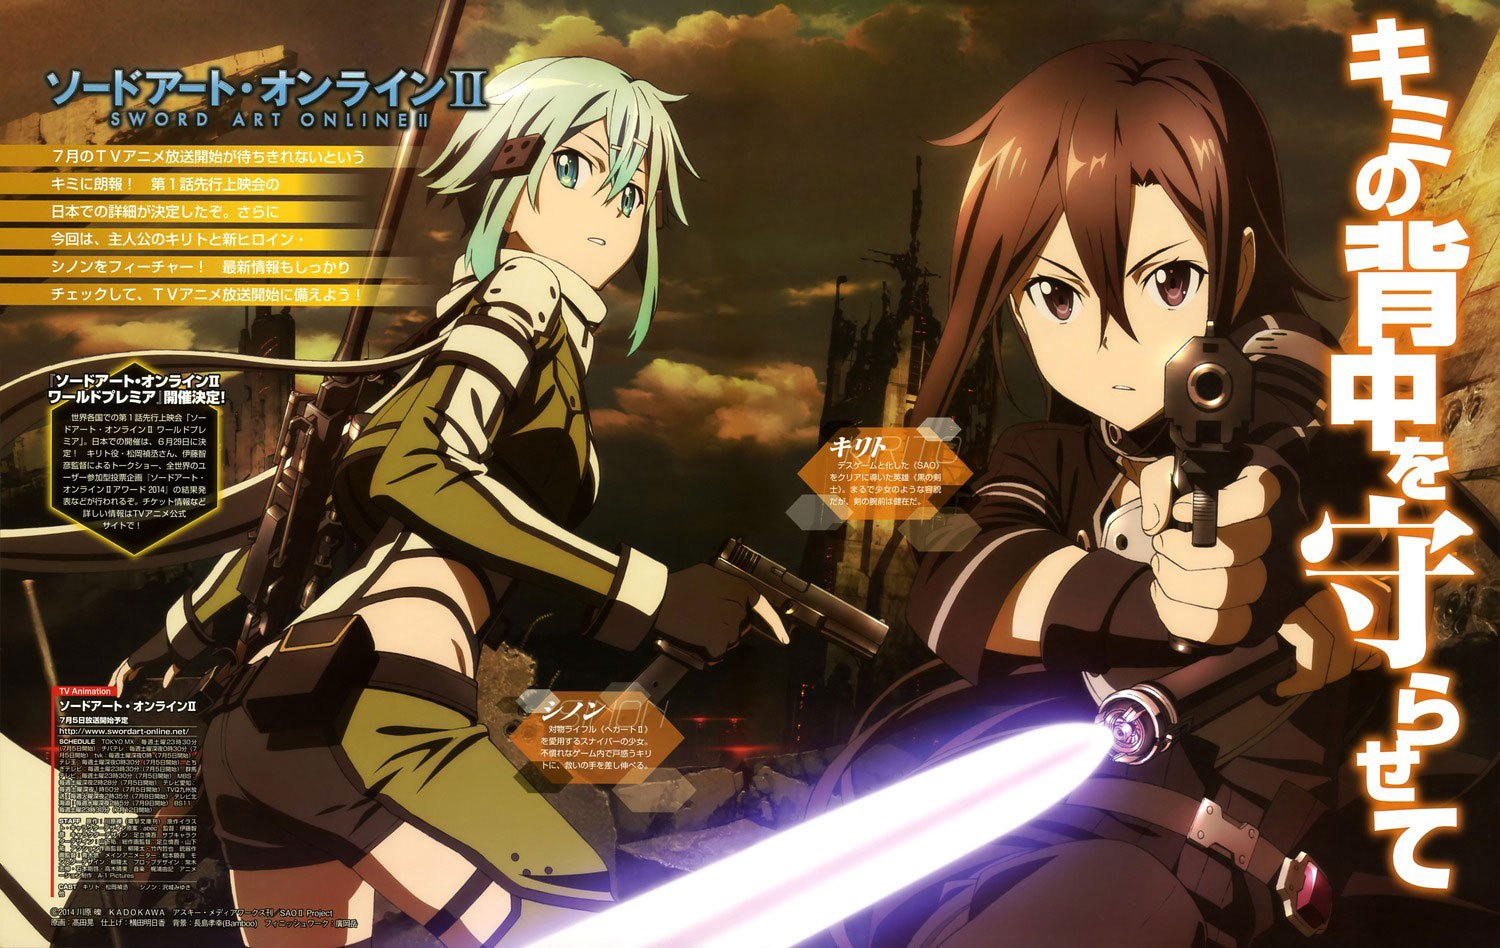 Sword Art Online II Magazine Scan 2